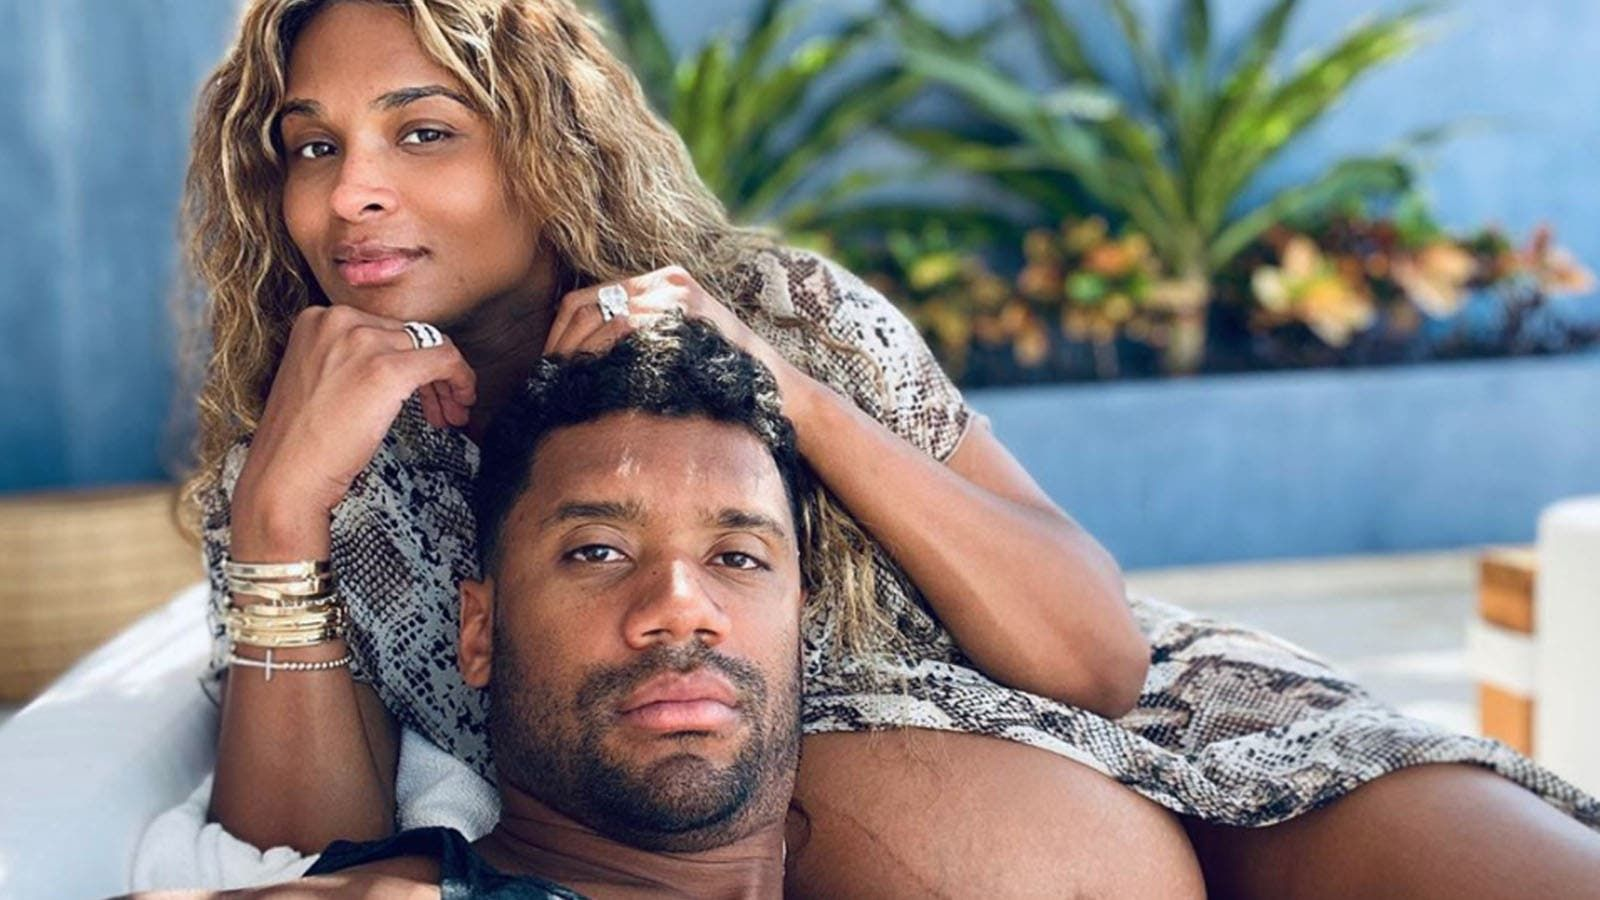 Photos: Ciara and her NFL star fiancé, Russell Wilson